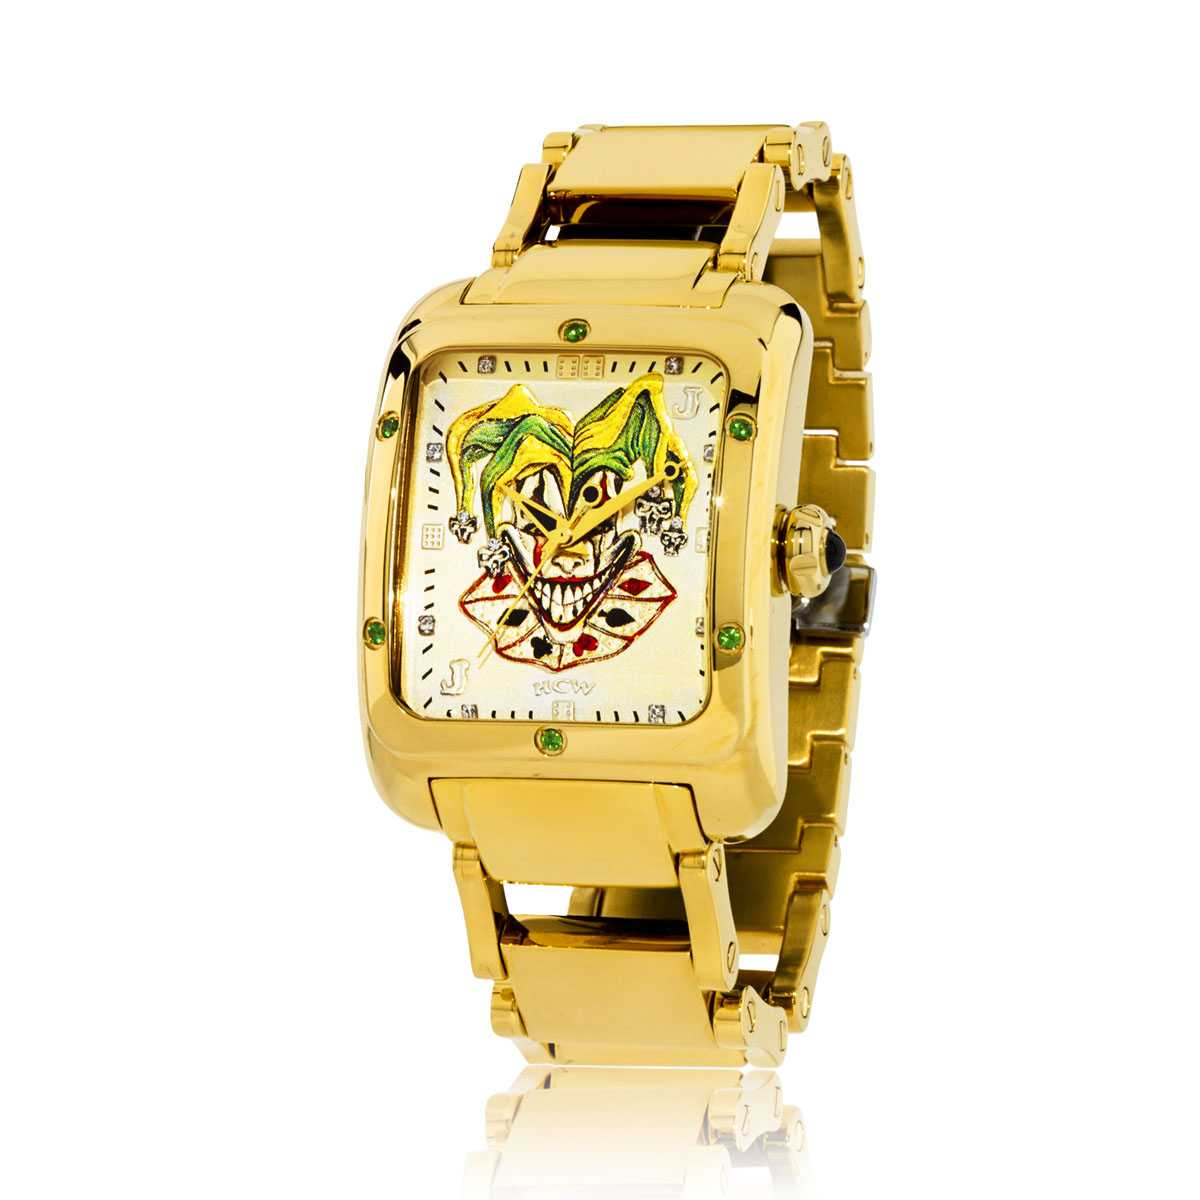 Joker Poker Watch in Stainless Gold IP Bracelet with .30ct Emeralds, designed by Steve Soffa